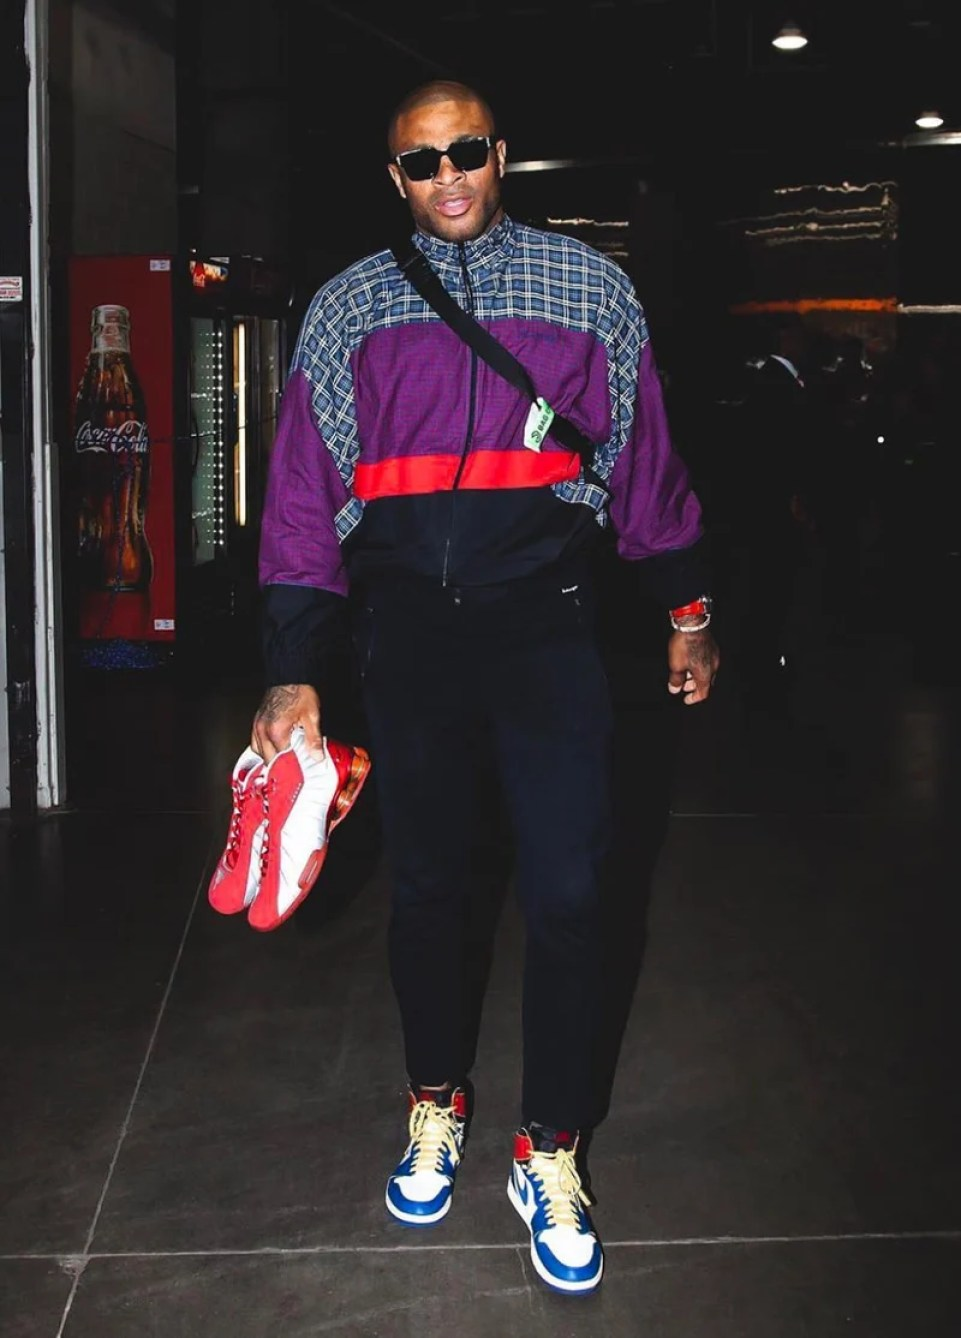 a076b40a72f9 PJ Tucker in the Union x Air Jordan 1 (photo by Jasear Thompson NBAE via  Getty Images) ...